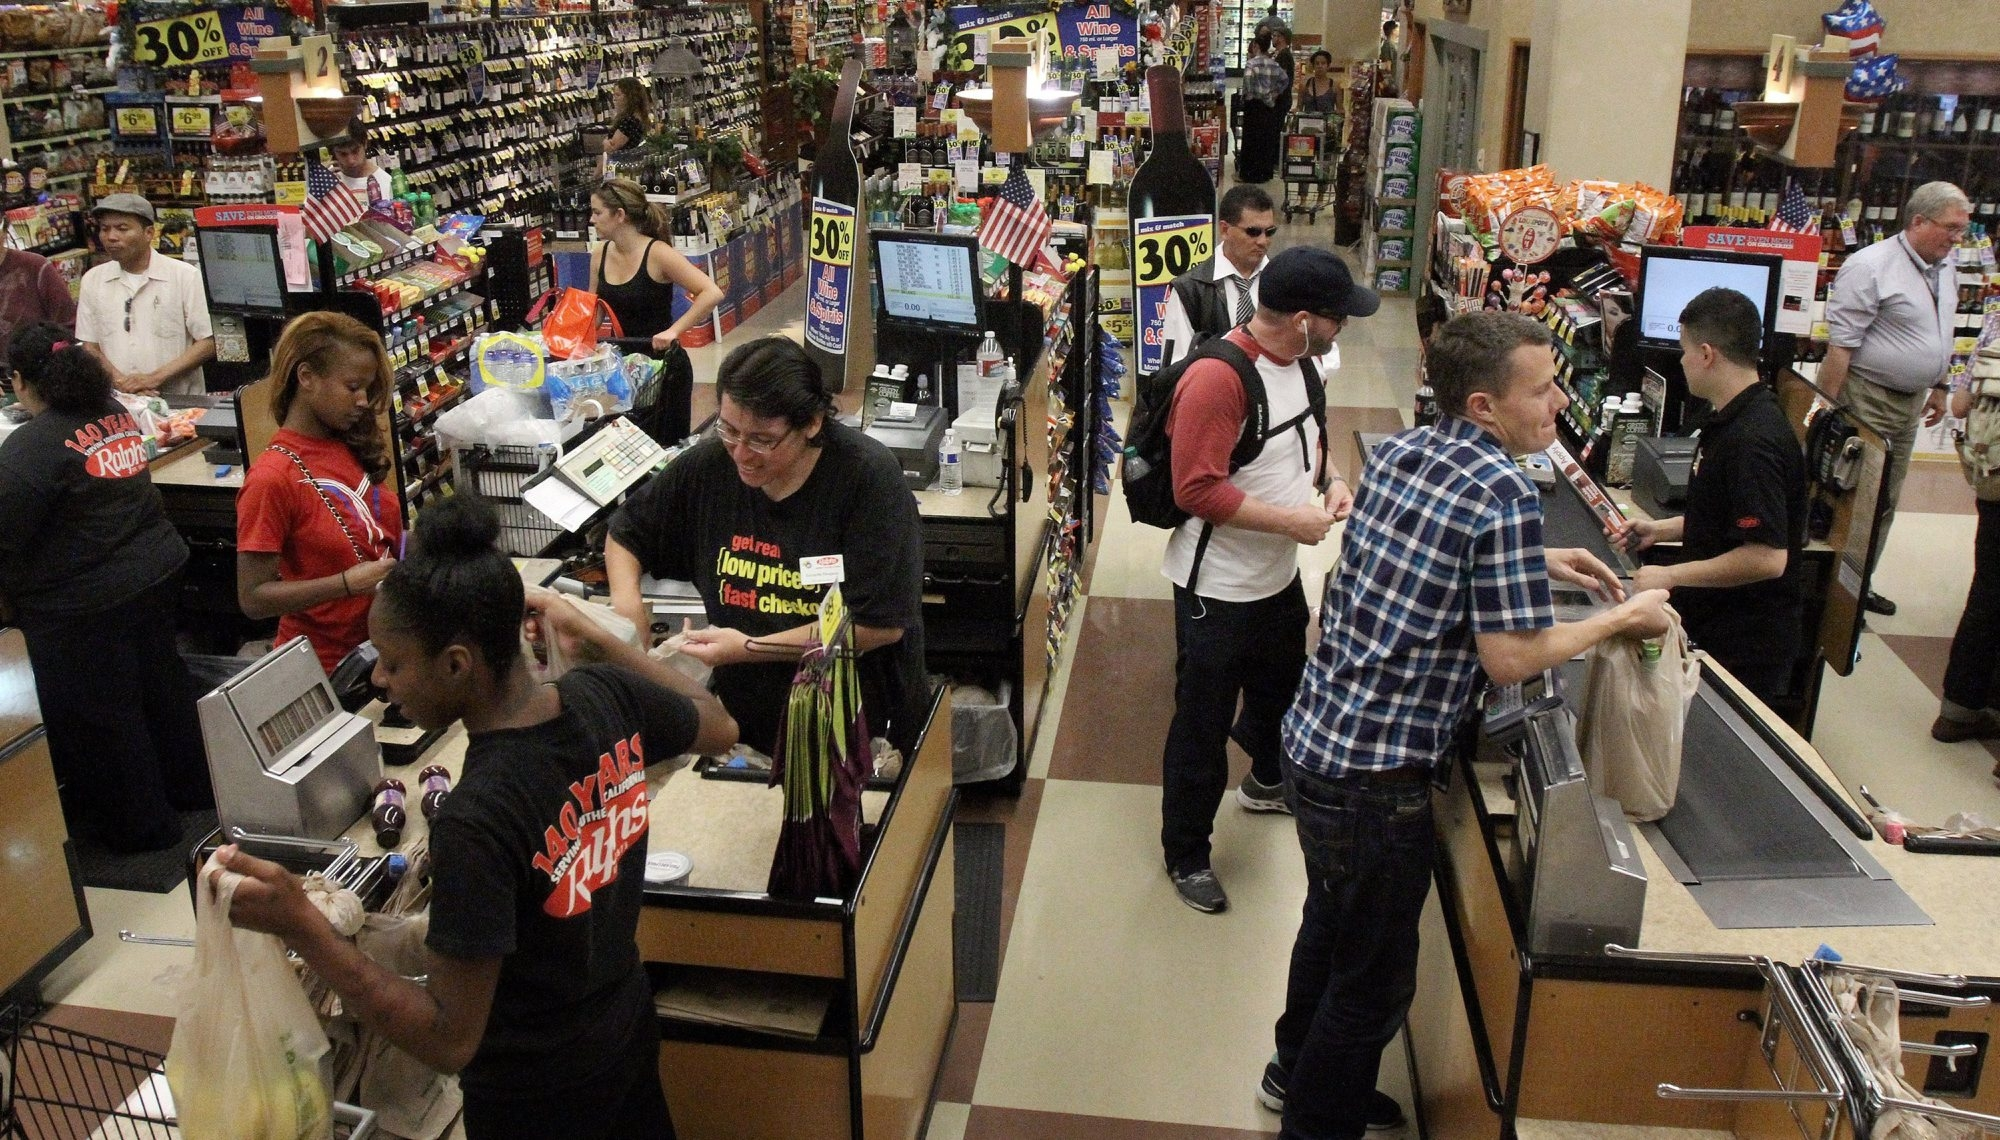 Ralphs grocery stores in Los Angeles have adopted the QueVision system, which uses infrared cameras to determine how many customers are in a store so managers can redeploy workers to the cash registers.